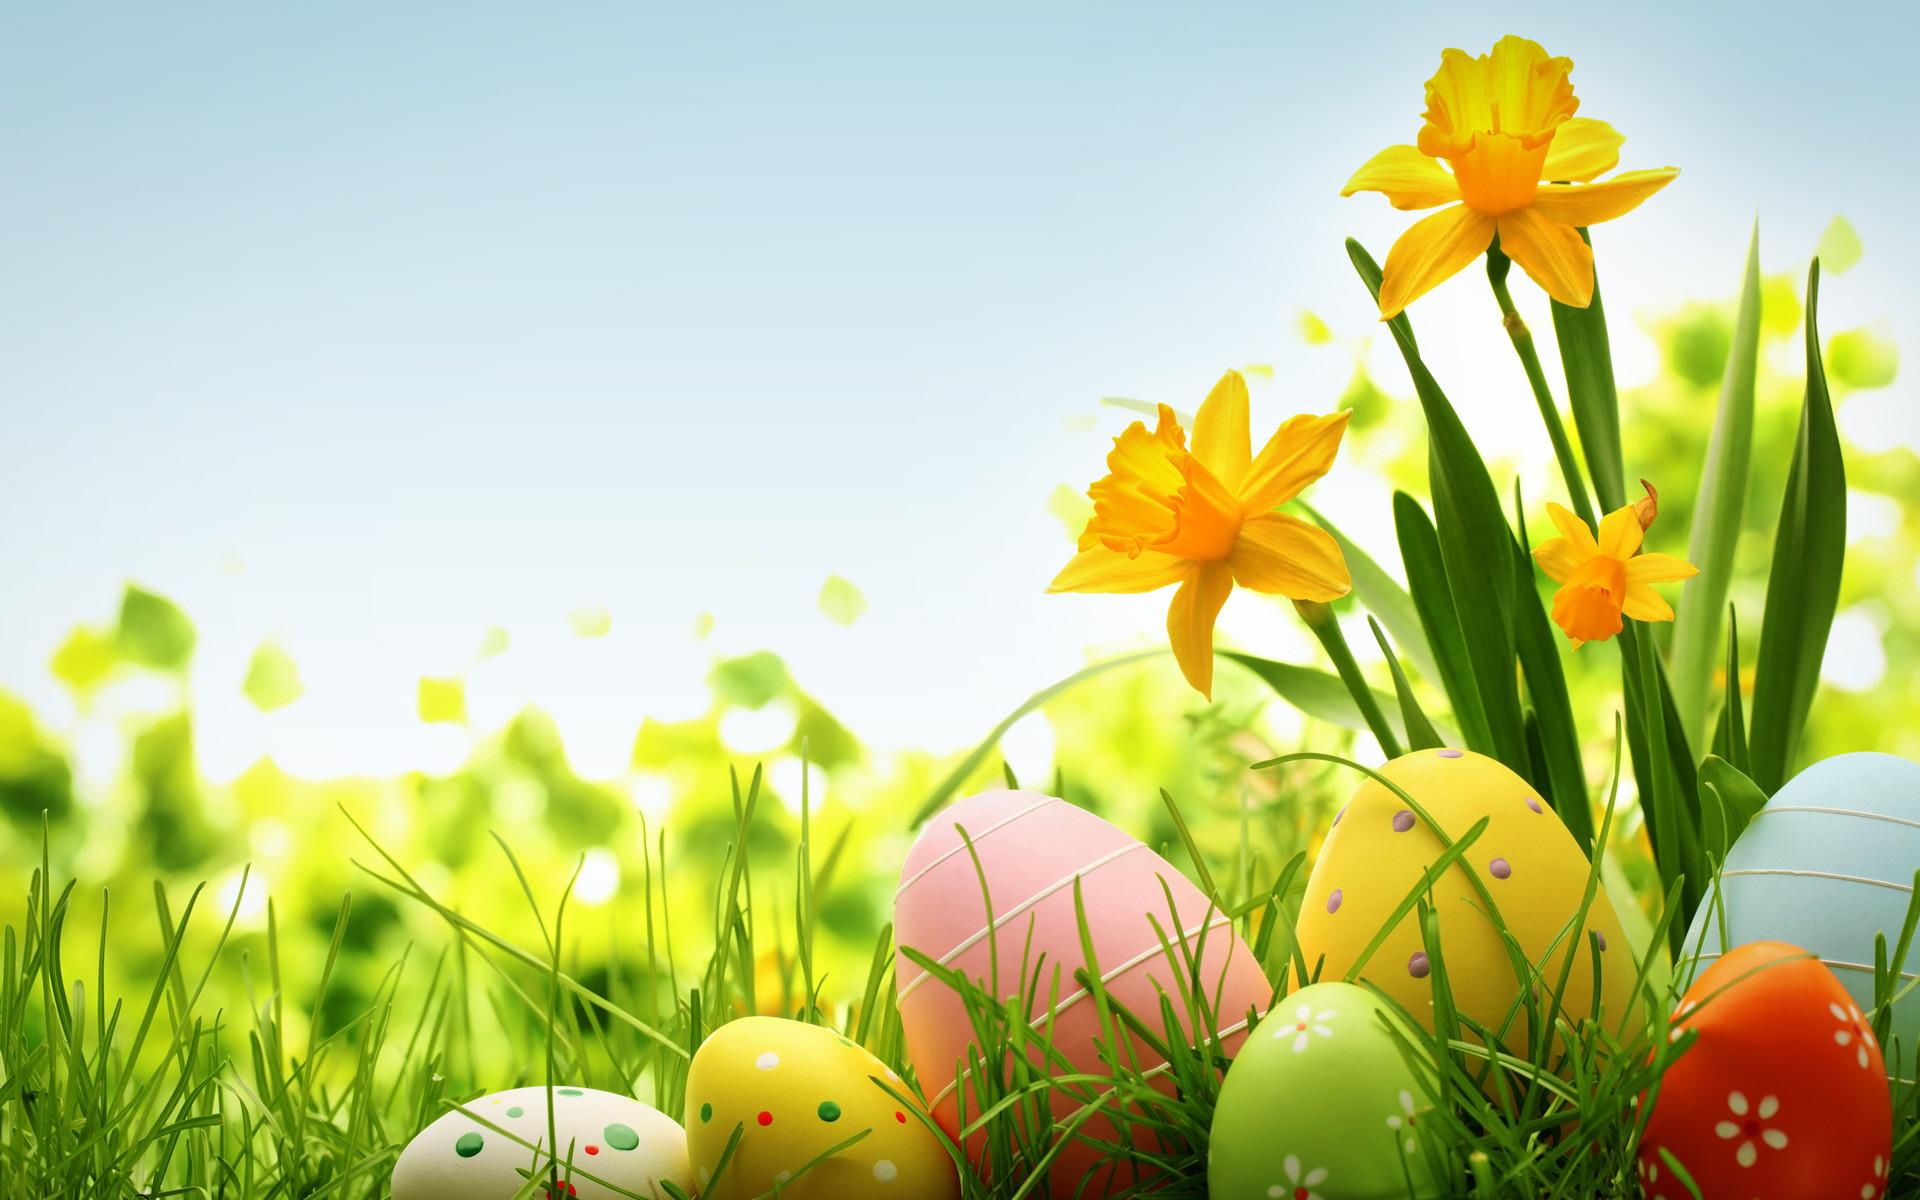 Easter Wallpaper 78 Images